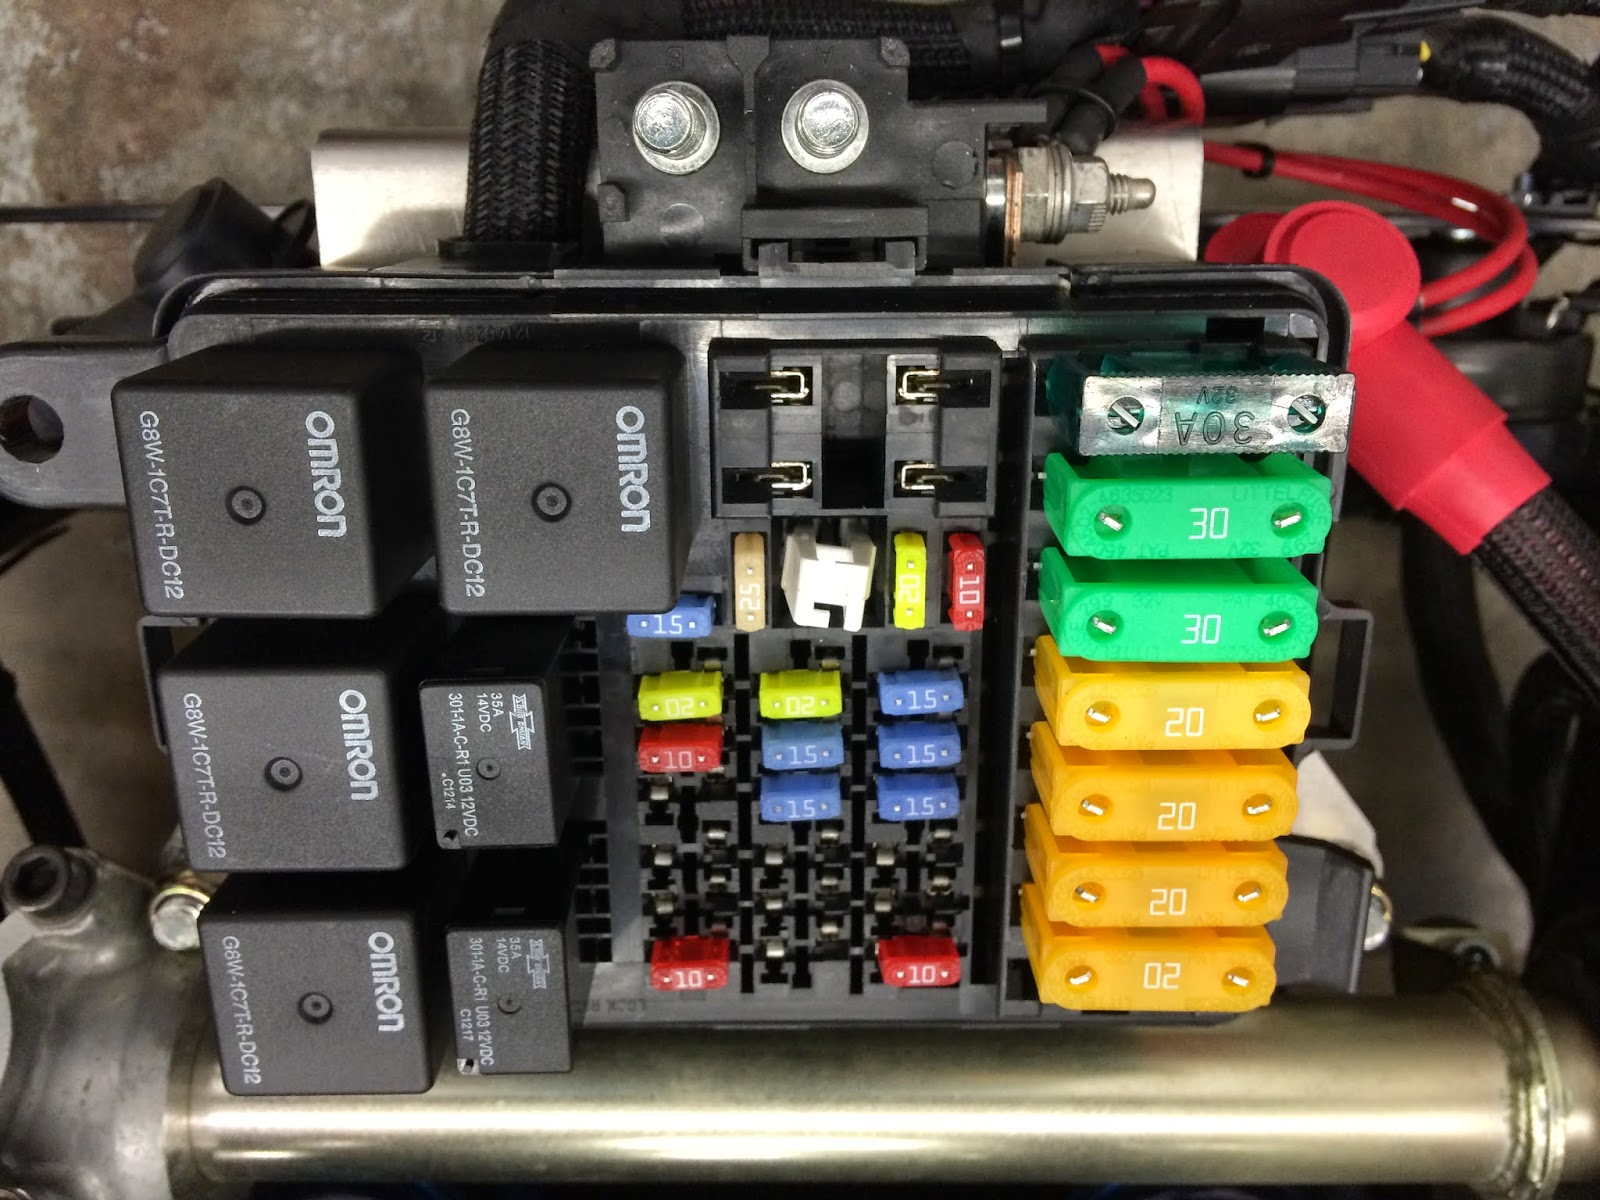 Lotus Evora Fuse Box Wiring Diagram Will Be A Thing Elise C Blower And Windshield Wipers Not Working Lotustalk The Location 340r